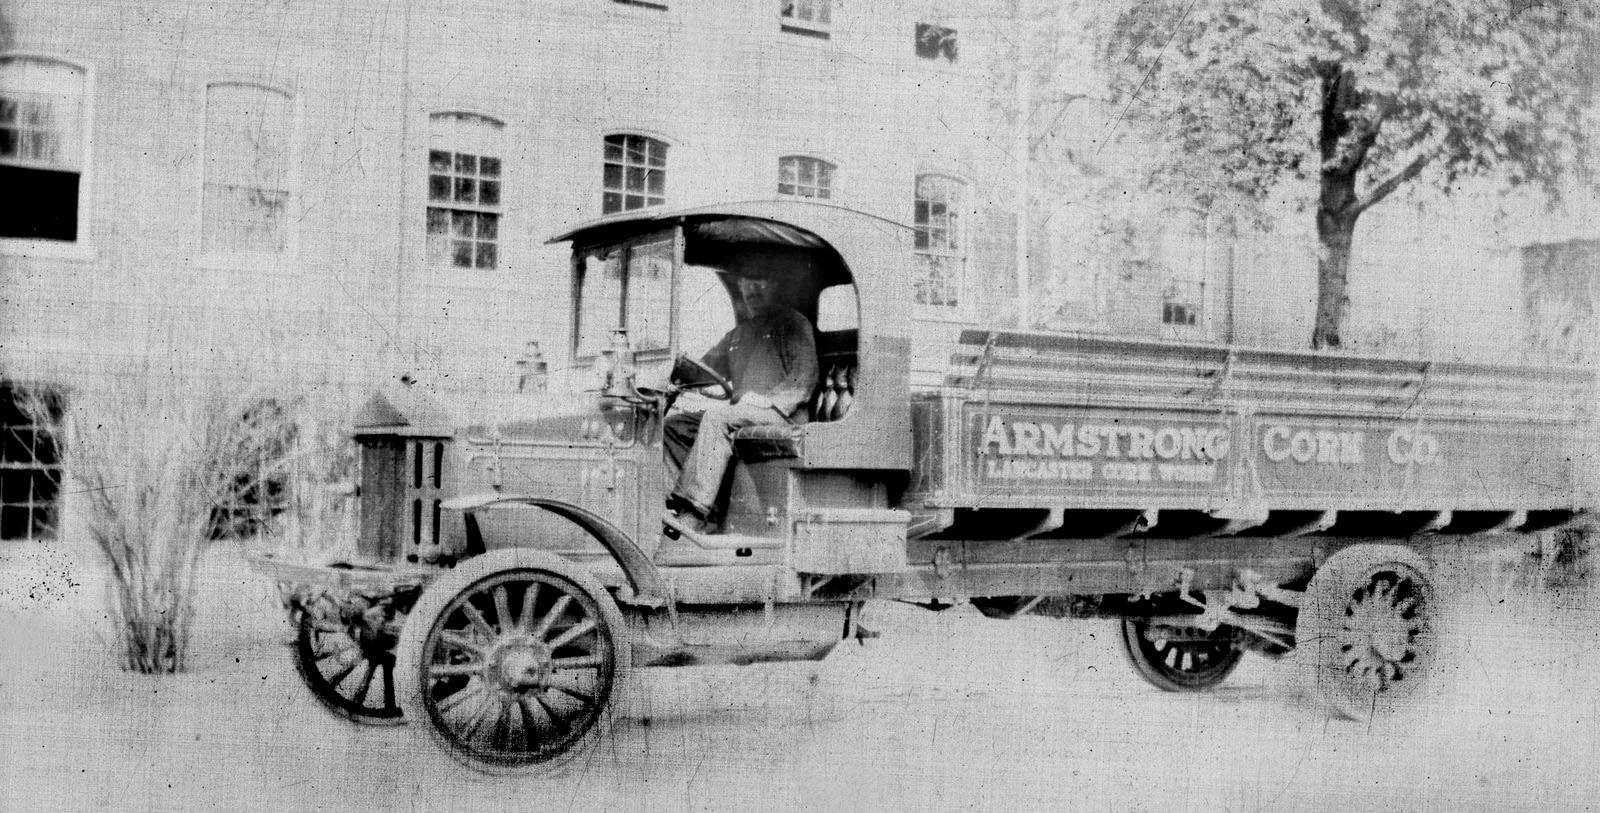 Historic image of truck driving by Cork Factory Hotel, 1865, Member of Historic Hotels of America, in Lancaster, Pennsylvania, Discover